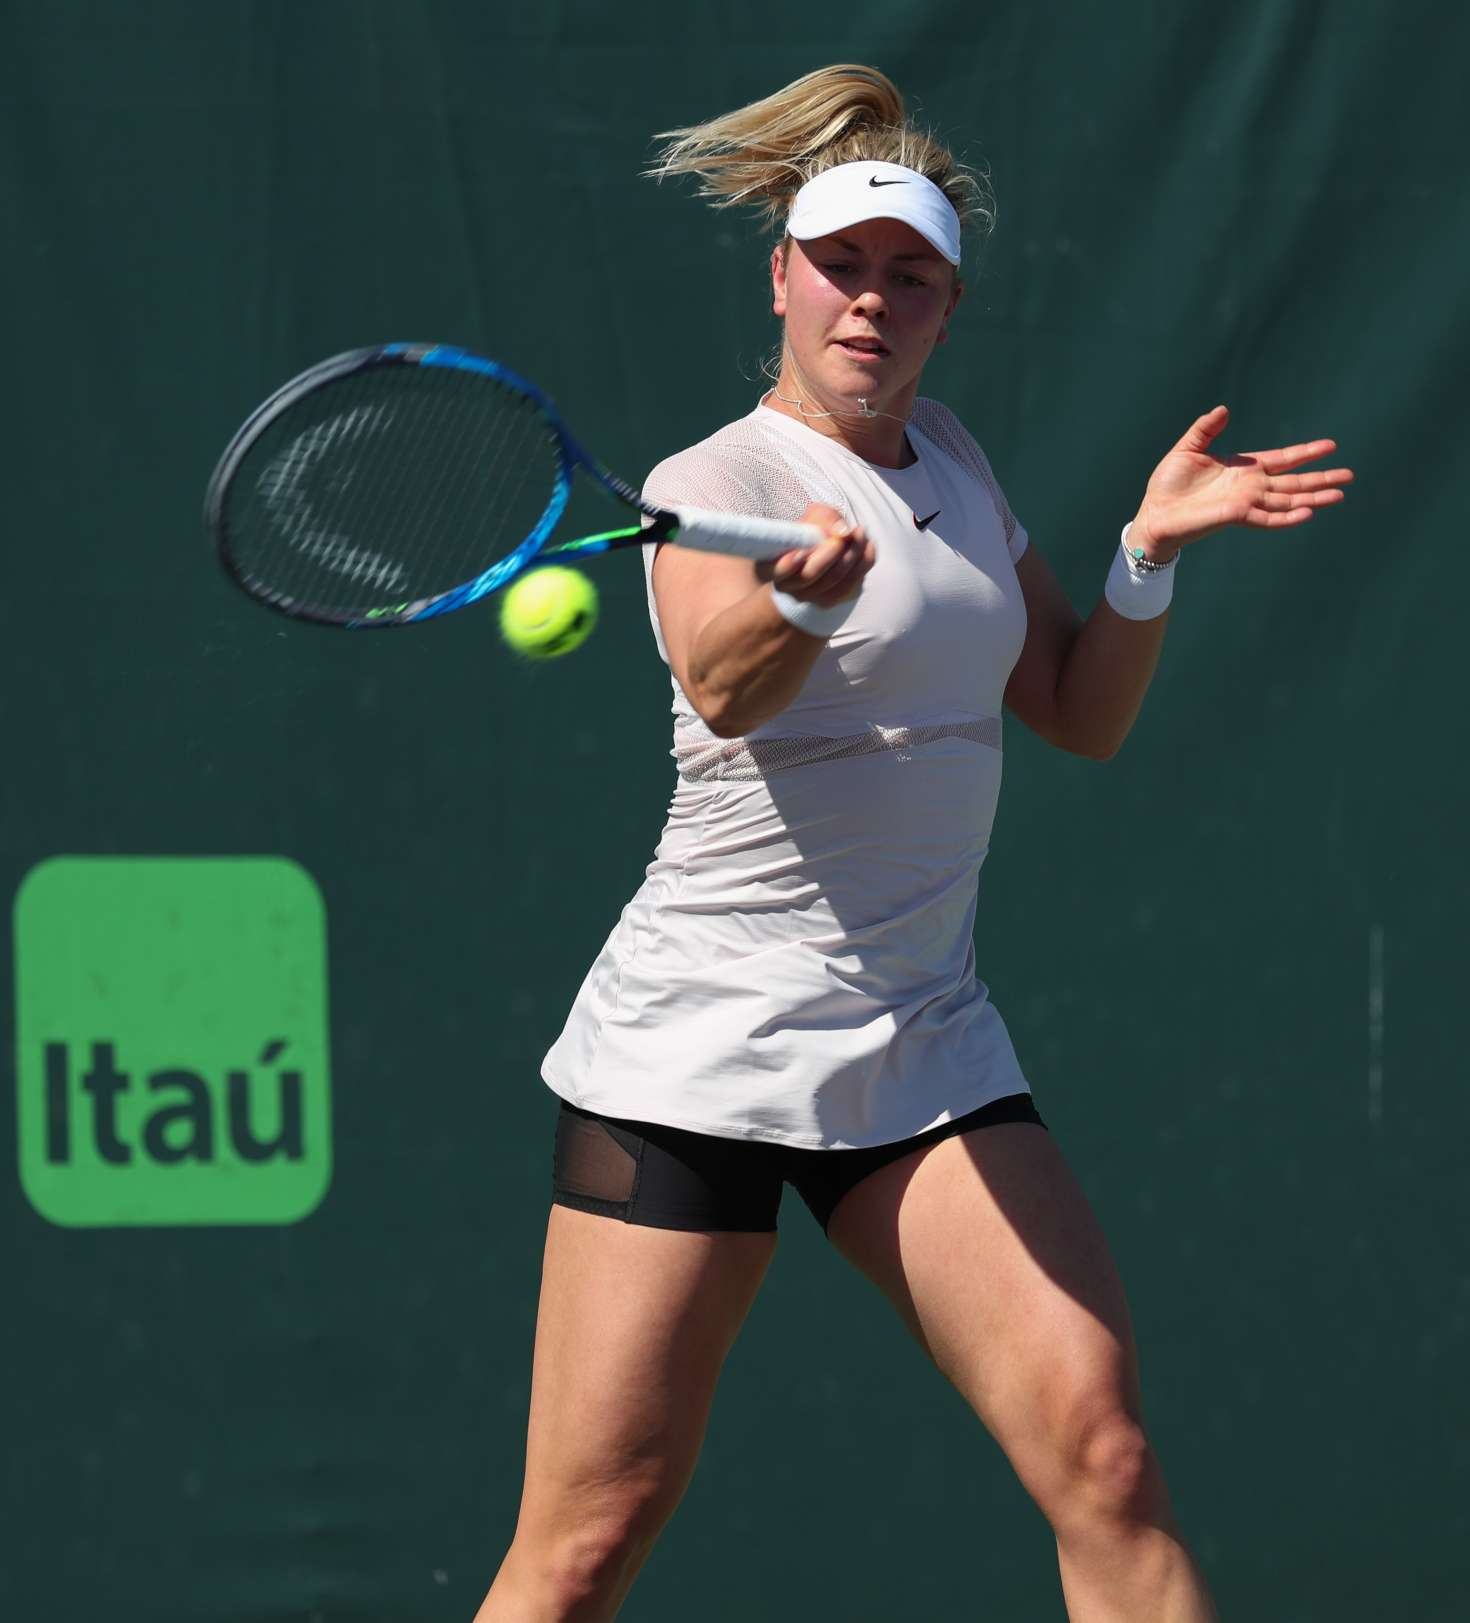 Carina Witthoft - 2018 Miami Open in Key Biscayne